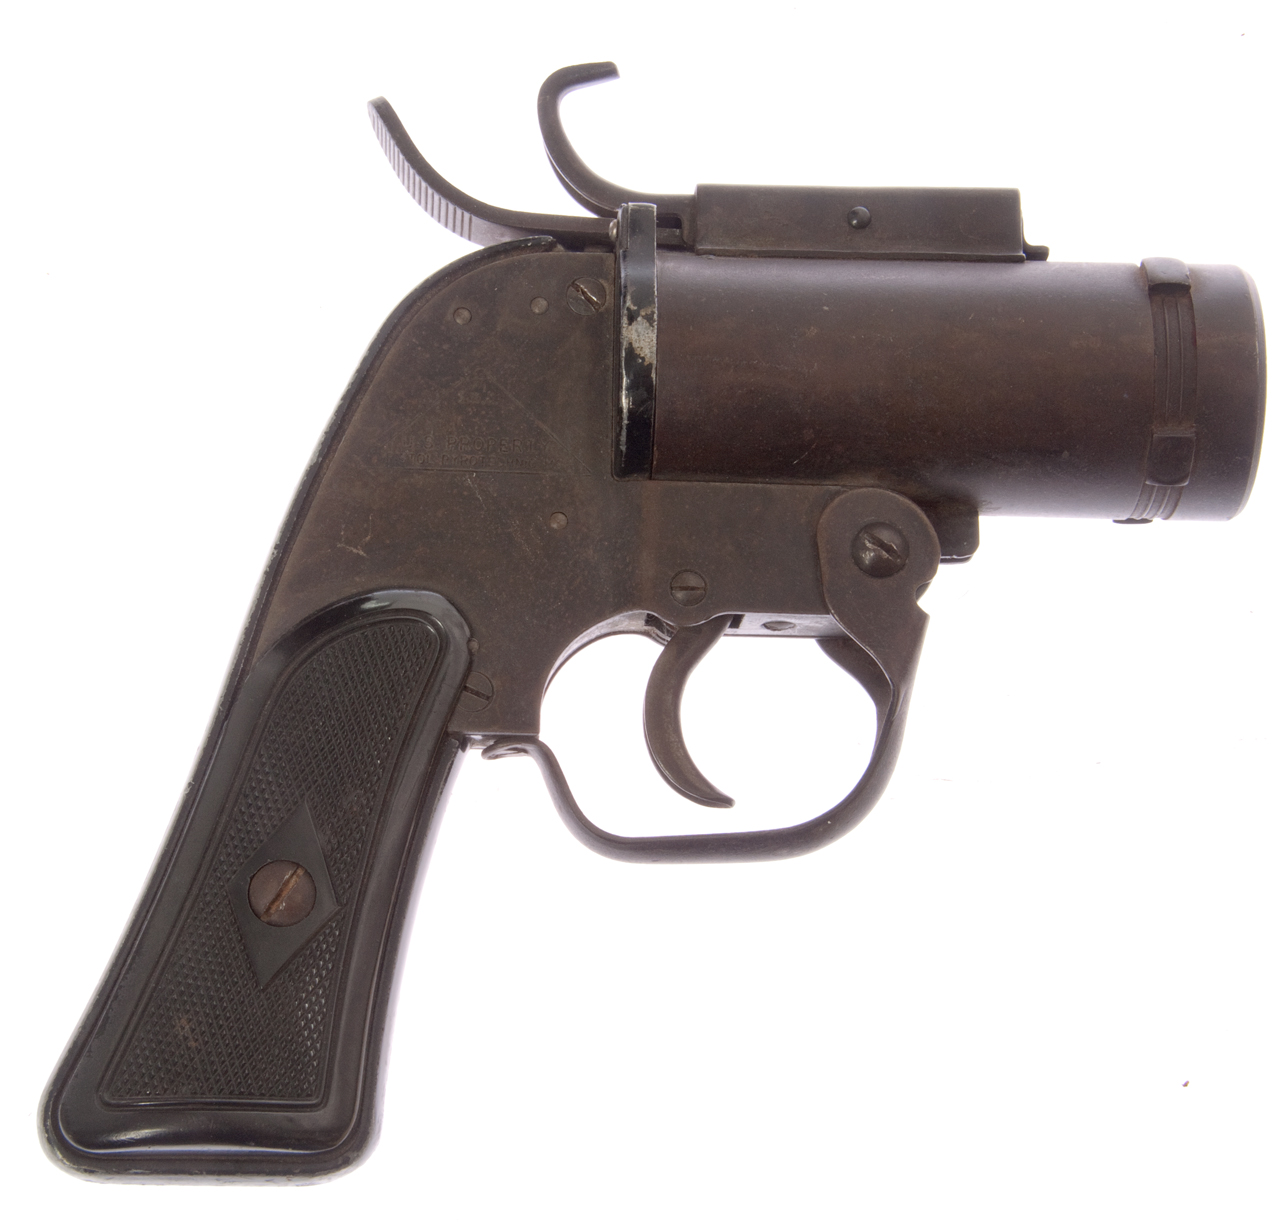 An M8 Pyrotechnic Flare Pistol